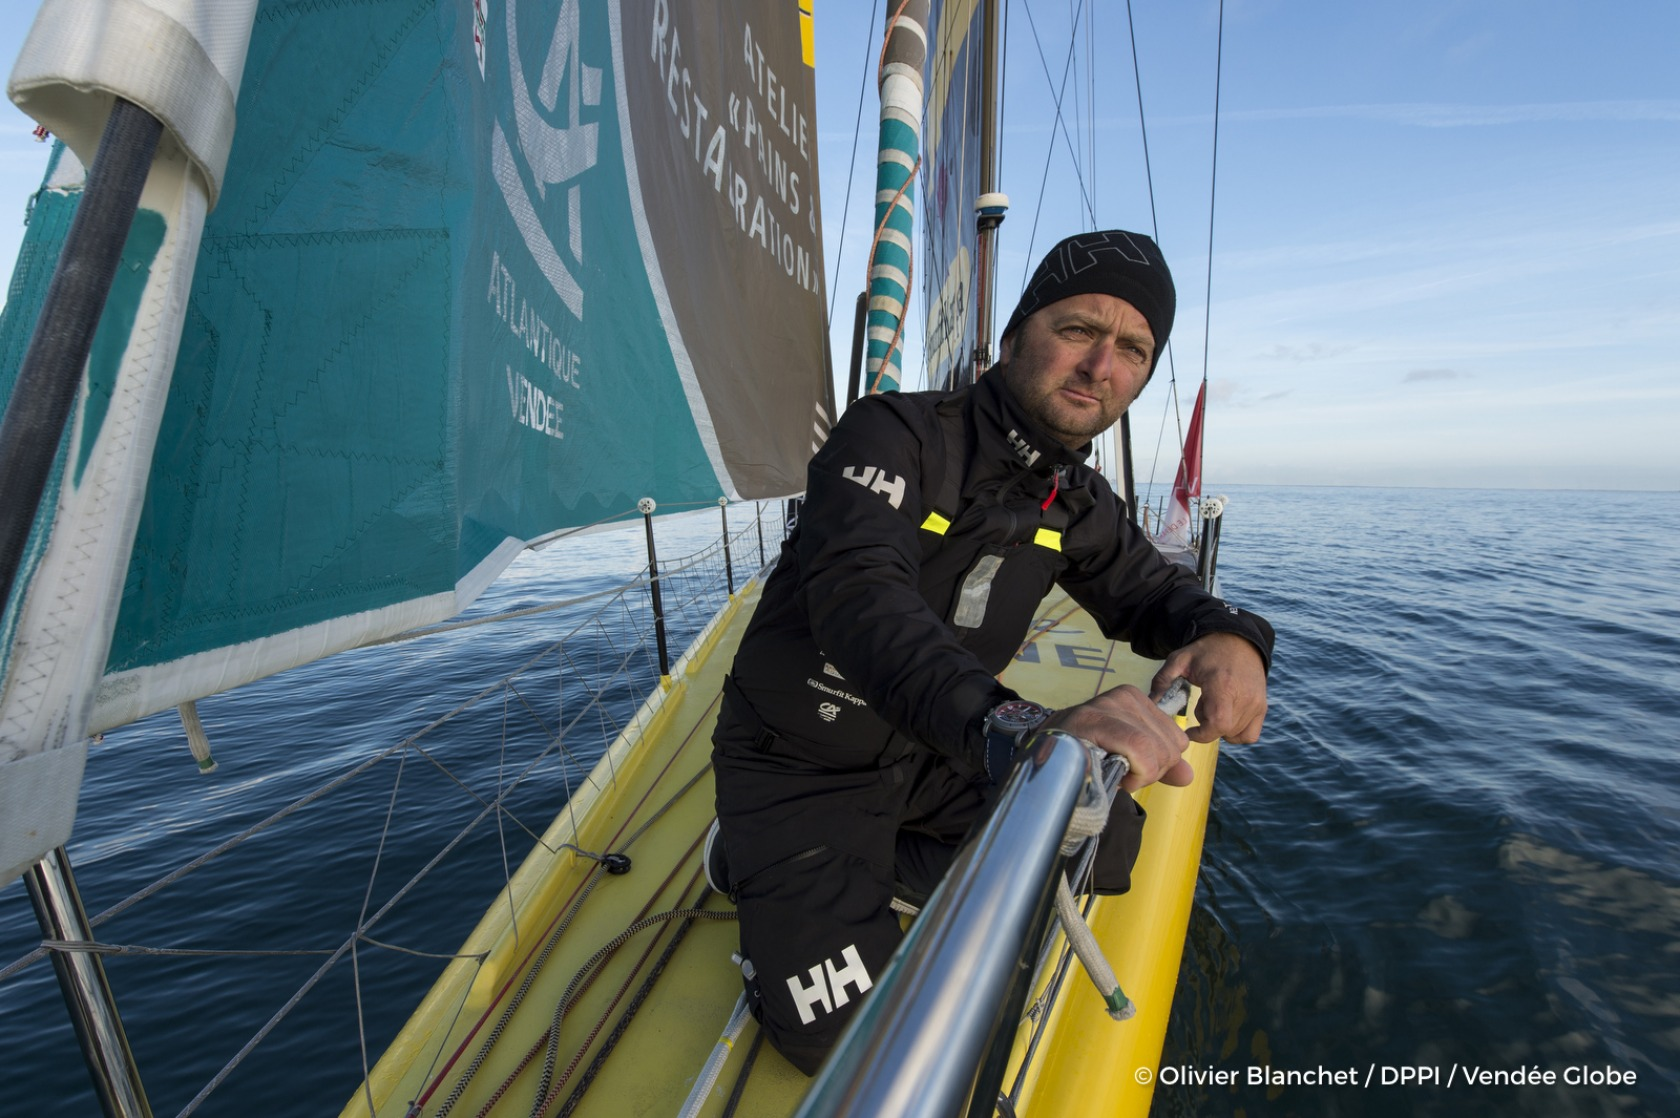 Onboard image bank of the IMOCA boat